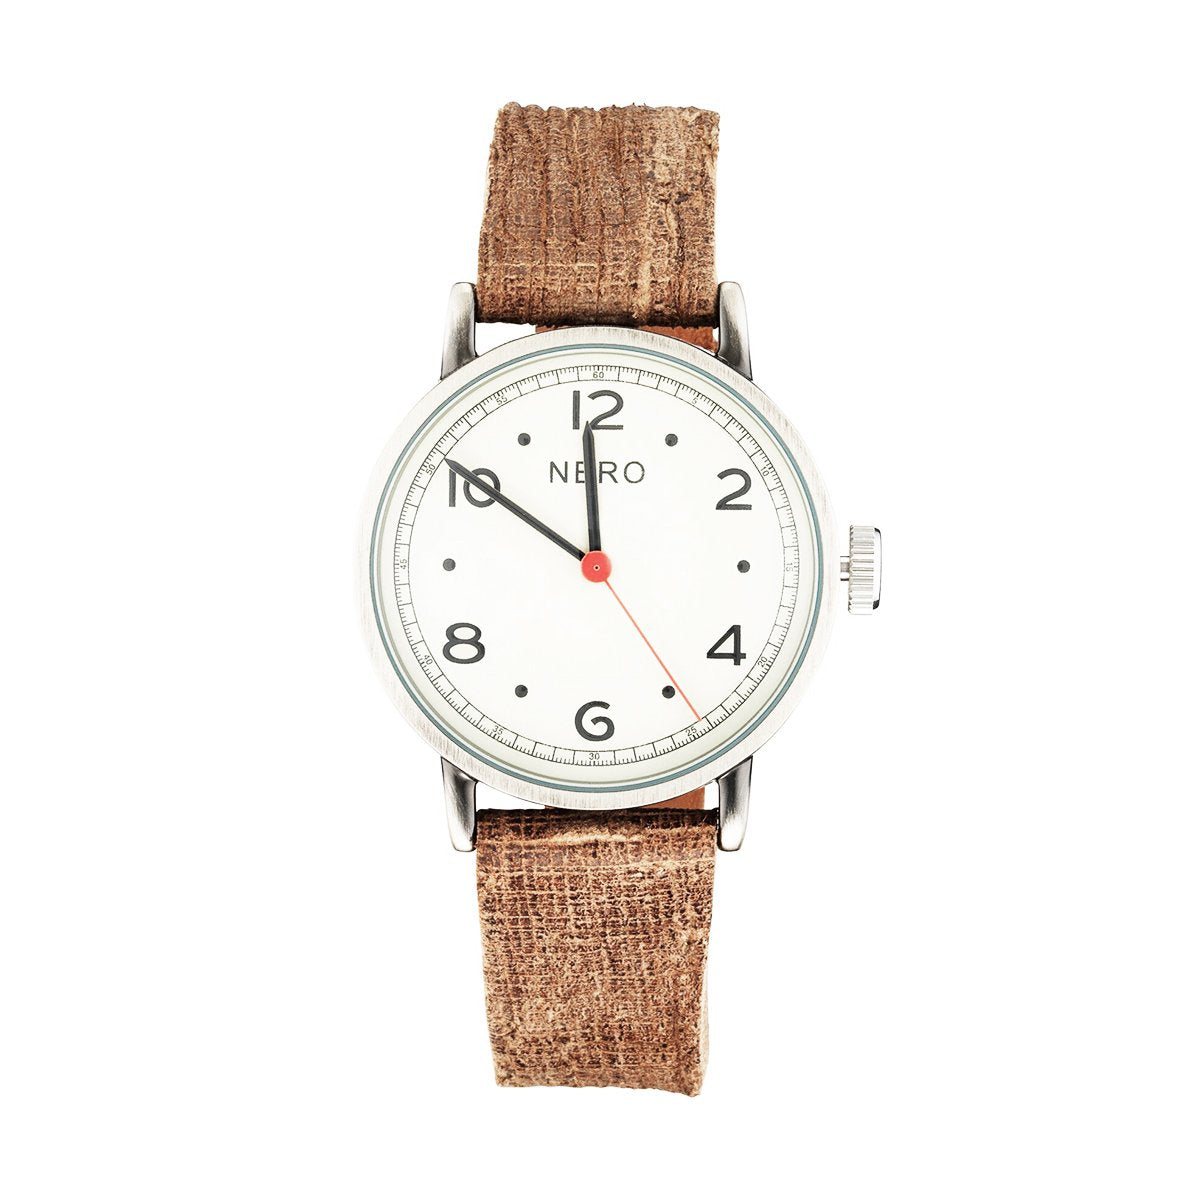 Nero 103 Veneto Unisex Chocolate Leather Strap Quartz Watch